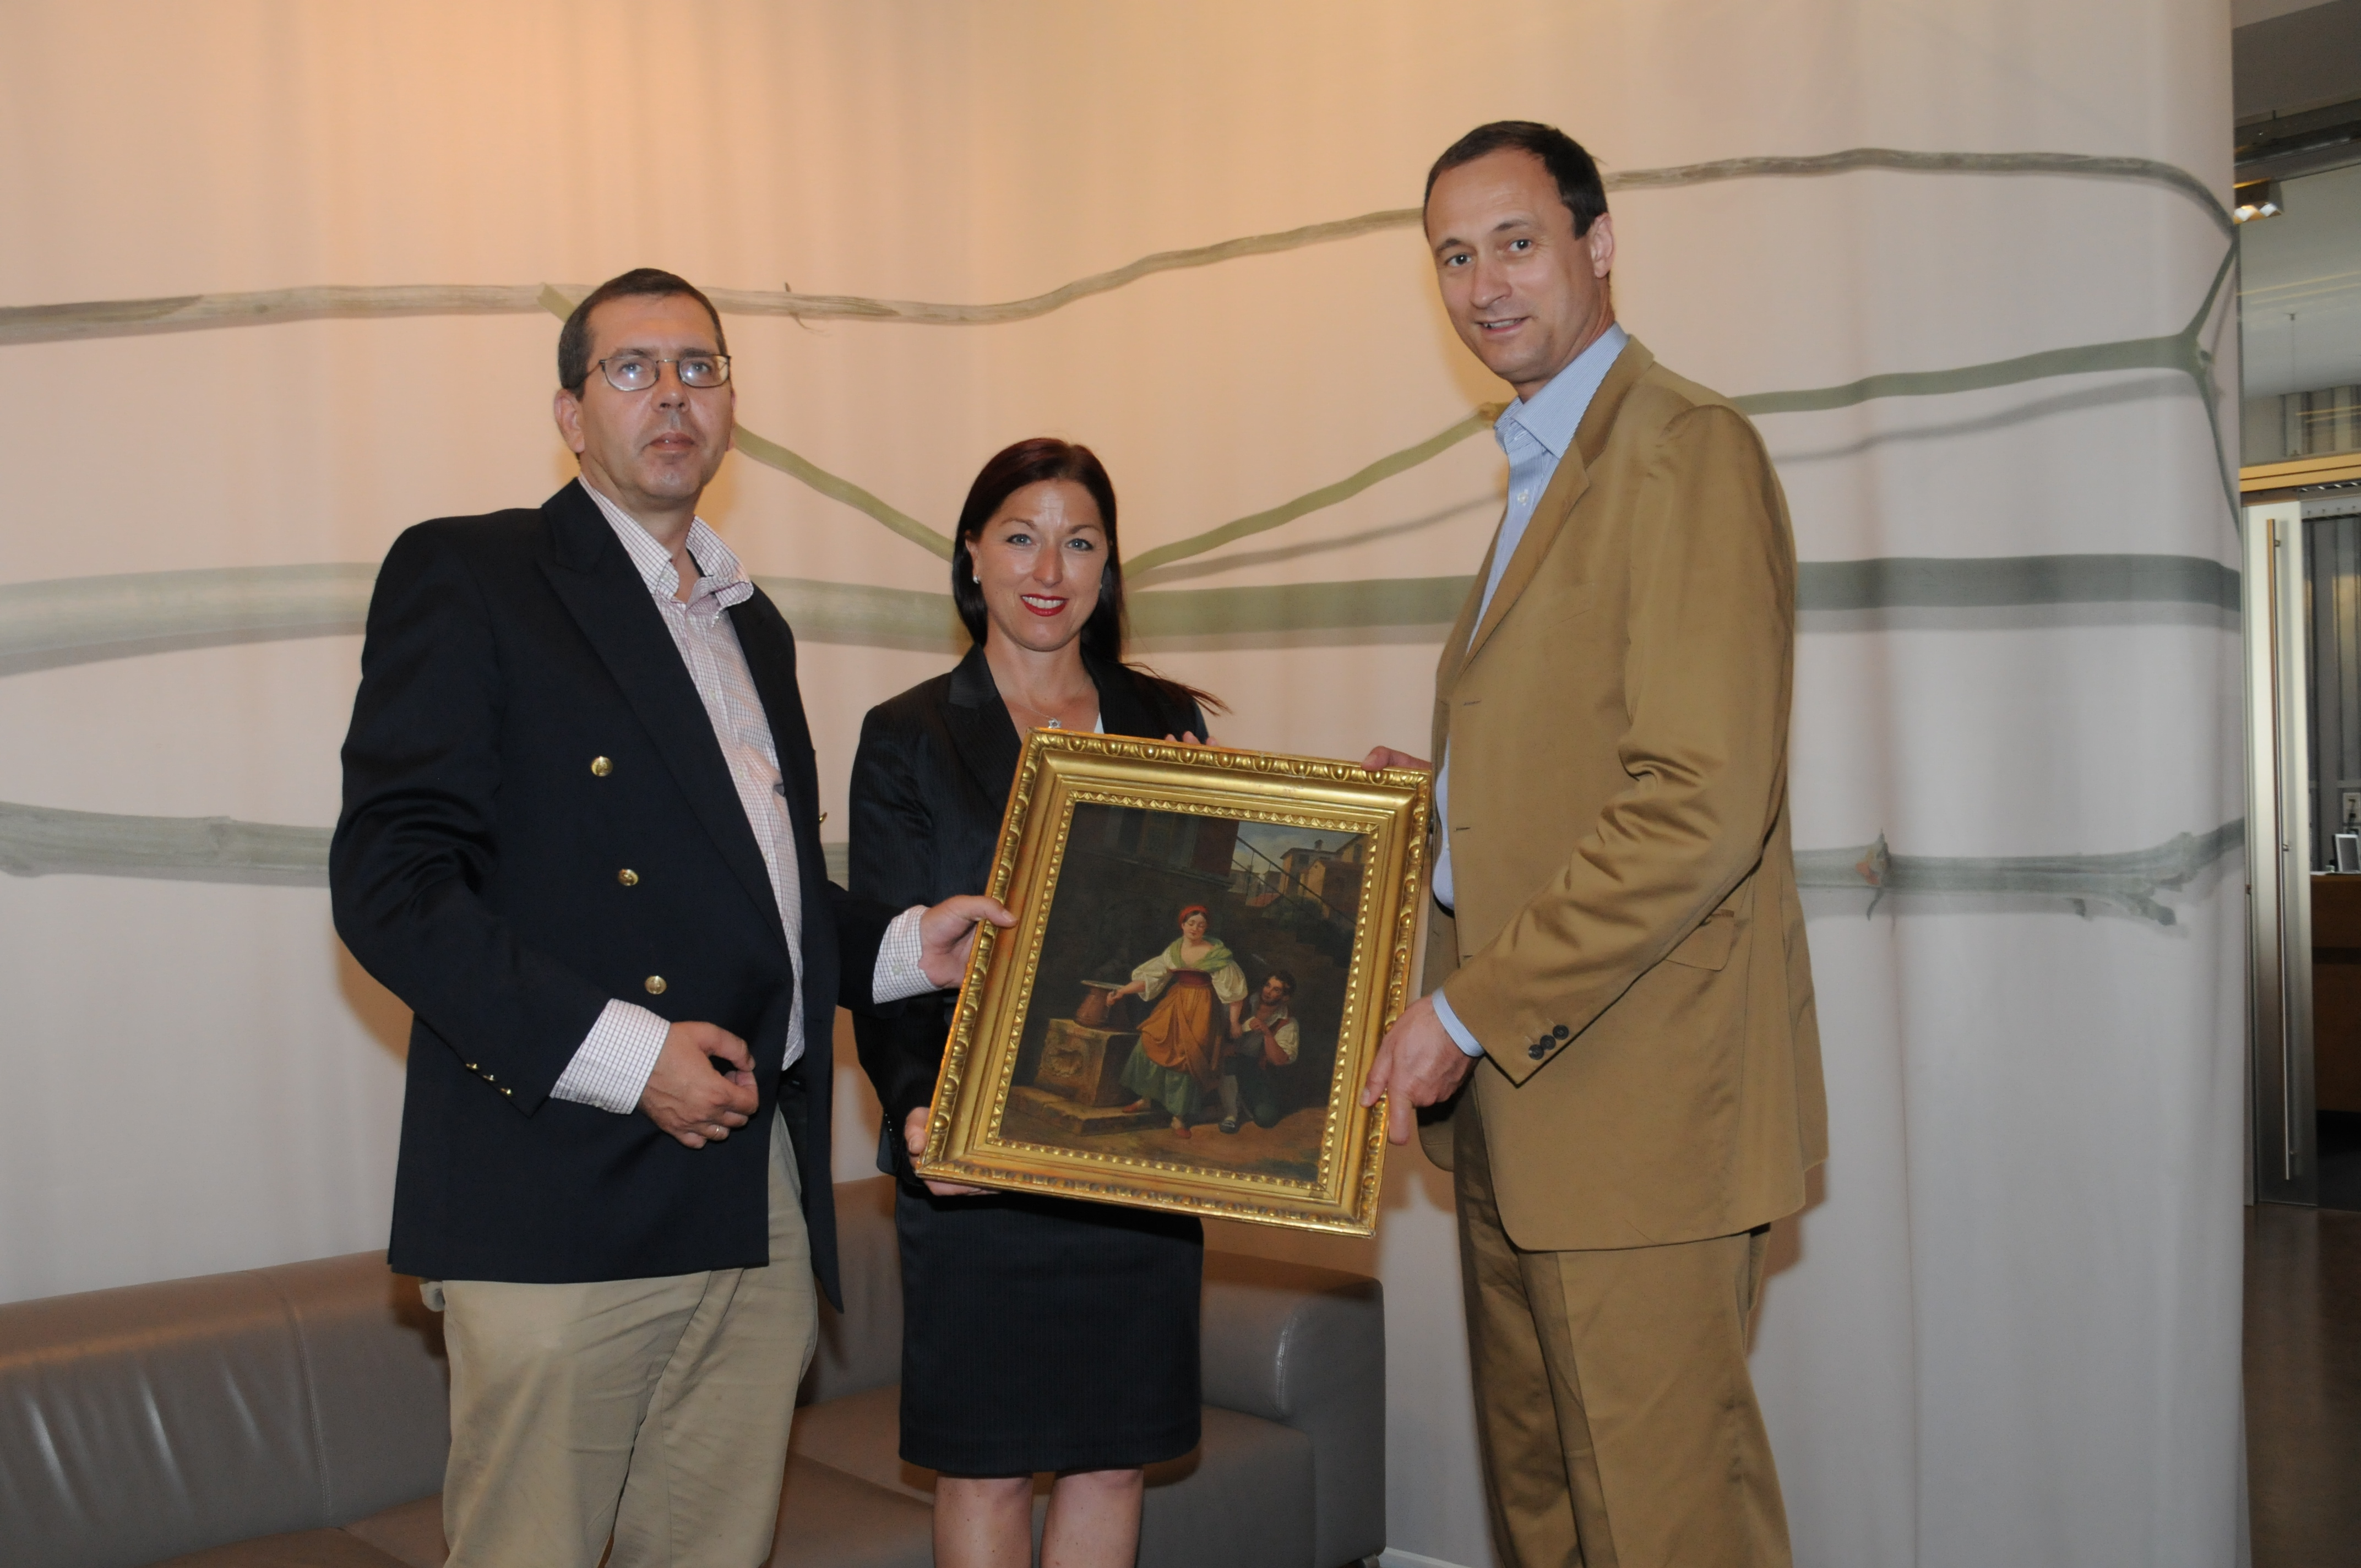 Provenance researcher Dr. Michael Wladika (left) and Municipal Councilor Dr. Andreas Mailath-Pokorny (right) present the restituted painting 'The Love Letter' by Johann Nepomuck Schödlberger to Secretary General Hannah Lessing.